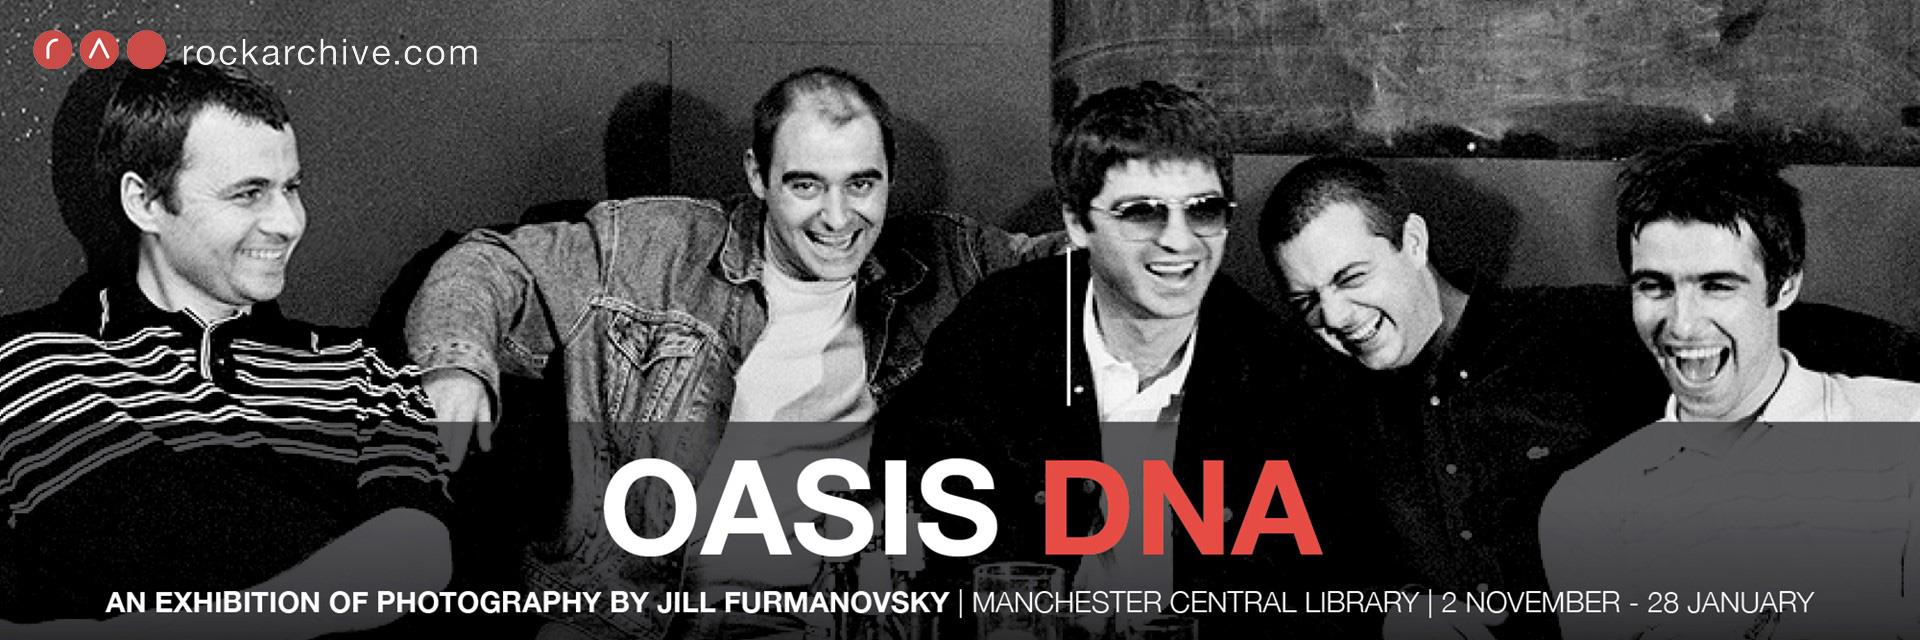 oasis-manchester-library-masthead-01.jpg